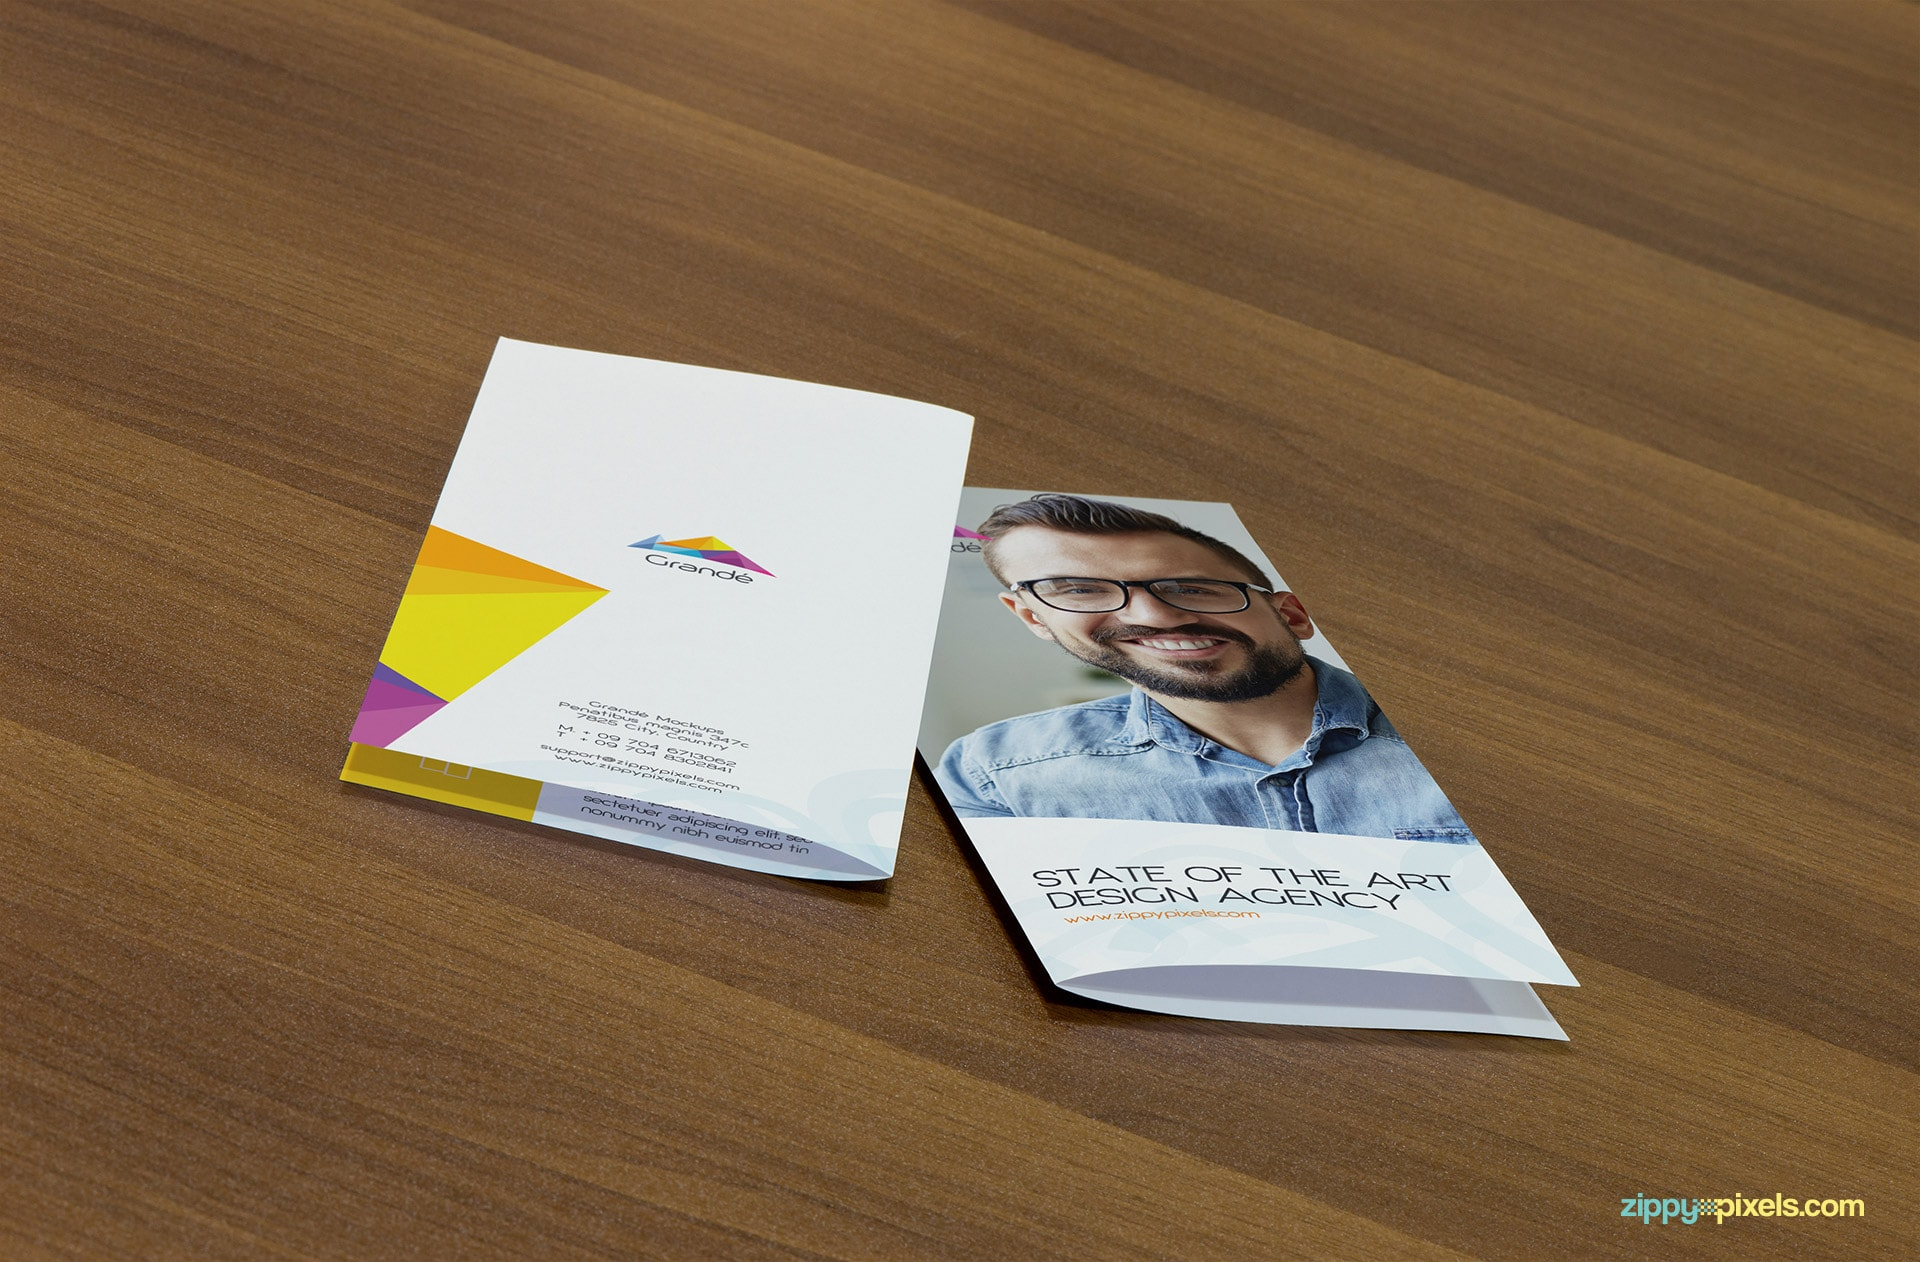 Mockup of 2 Bifold Flyers on Table Showing Front and Back